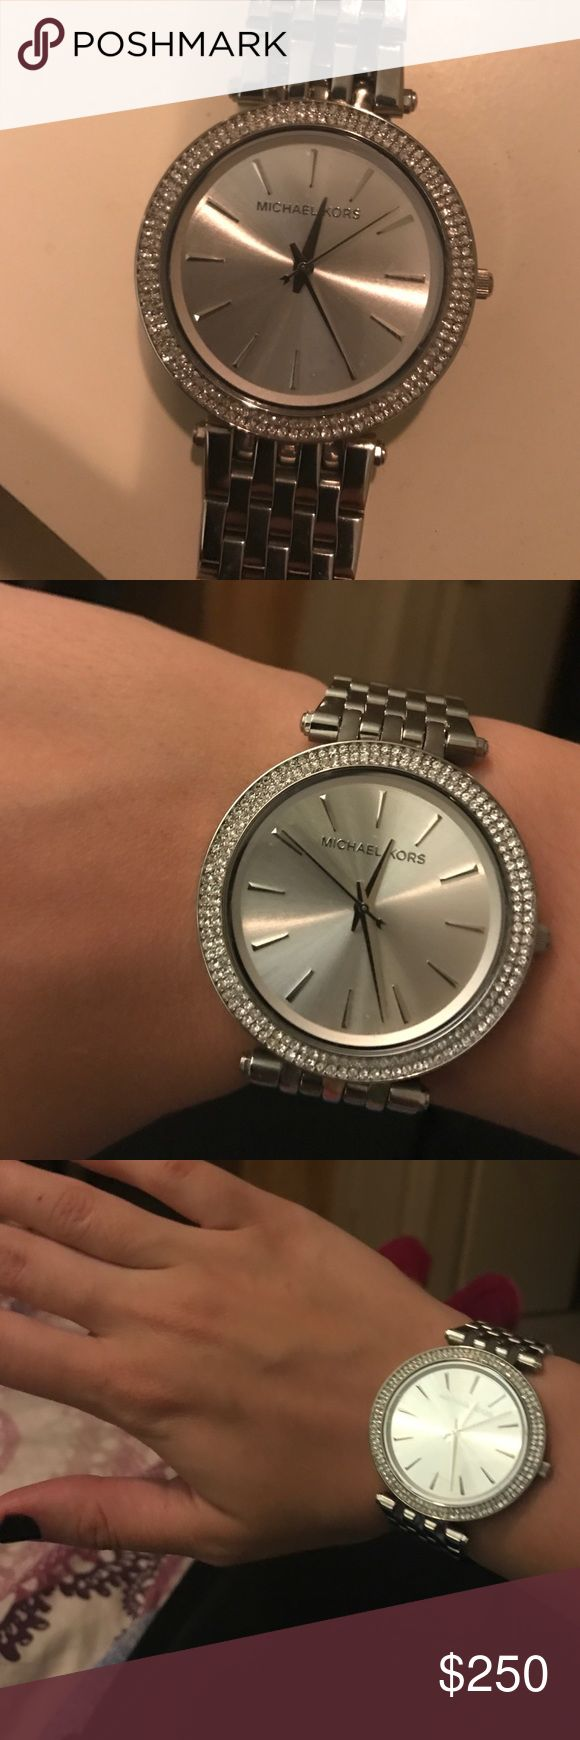 Brand new Michael Kors womens watch Brand new, stainless steel, never worn, silver-tone hardware. Michael Kors. Michael Kors Accessories Watches